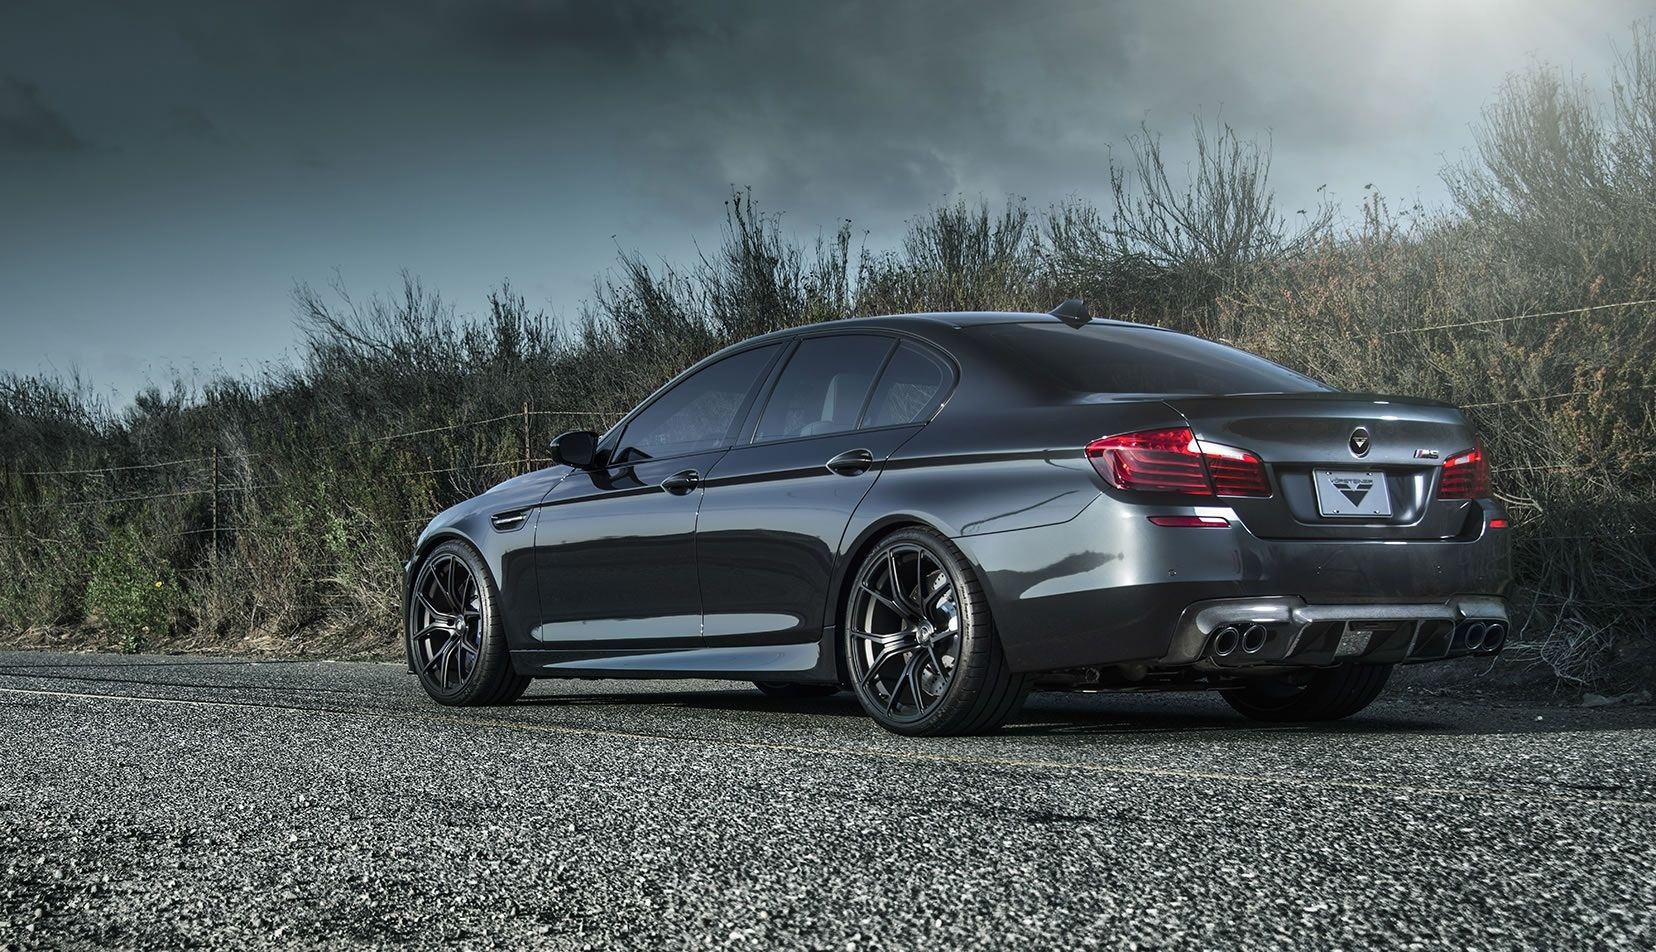 Pictures Of 2014 Bmw M5s Bmw Bmw M5 Bmw 5 Series